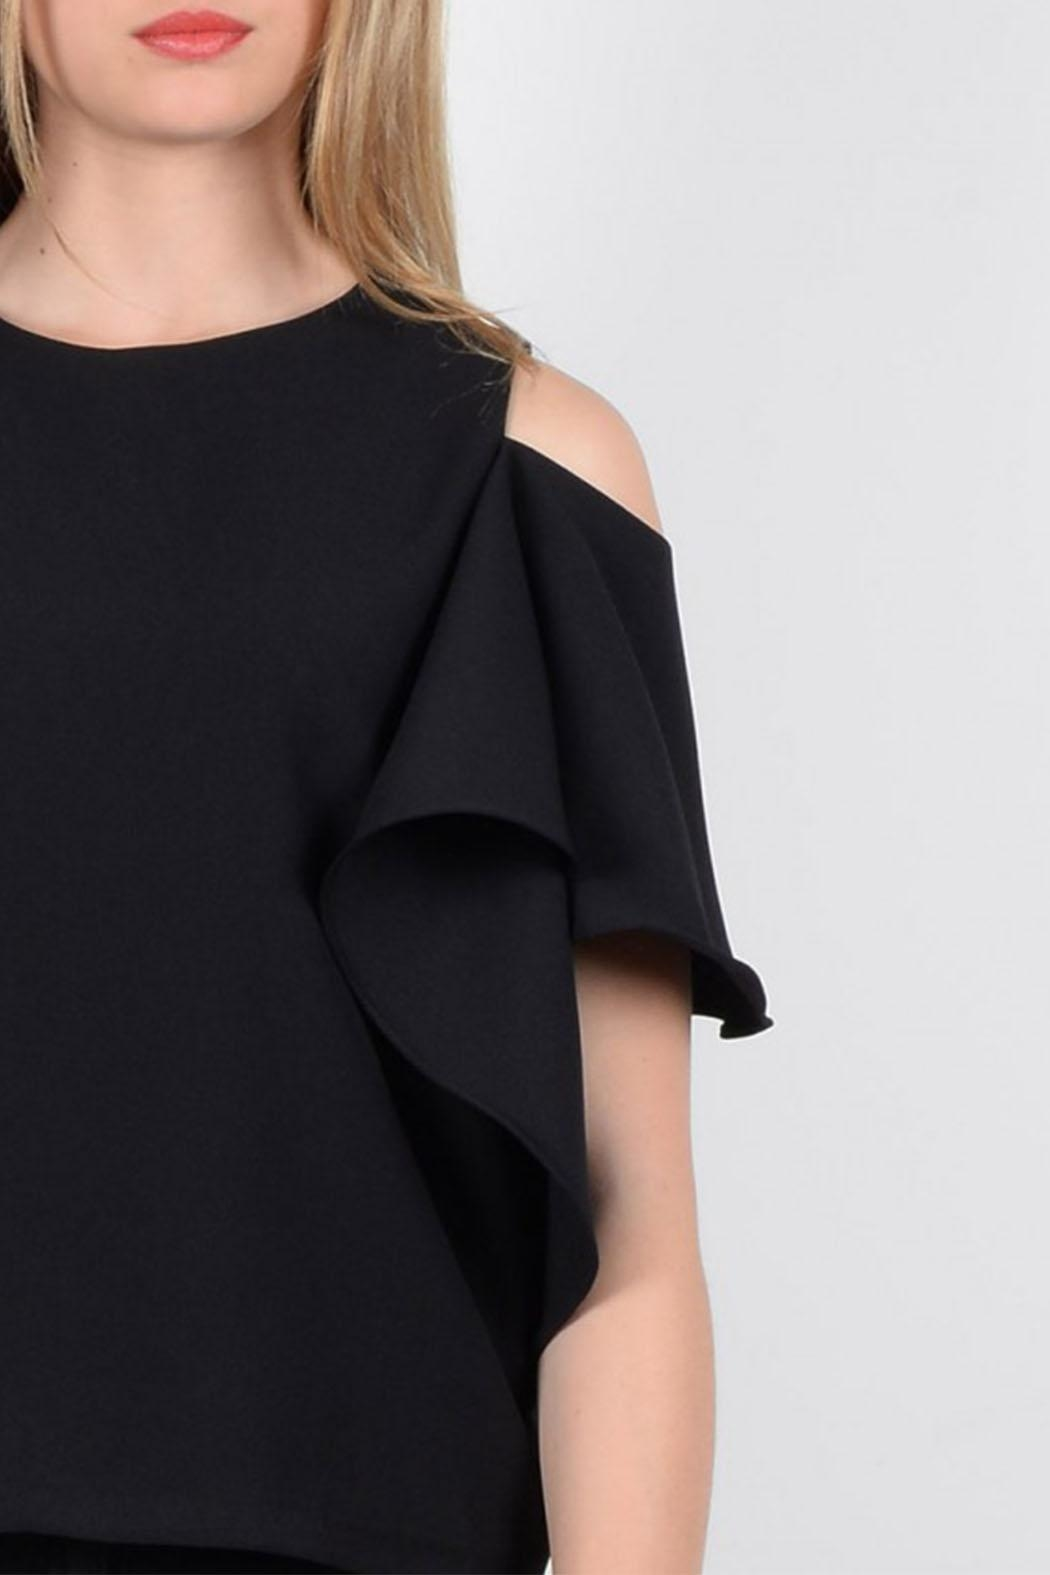 Molly Bracken Woven Top - Back Cropped Image